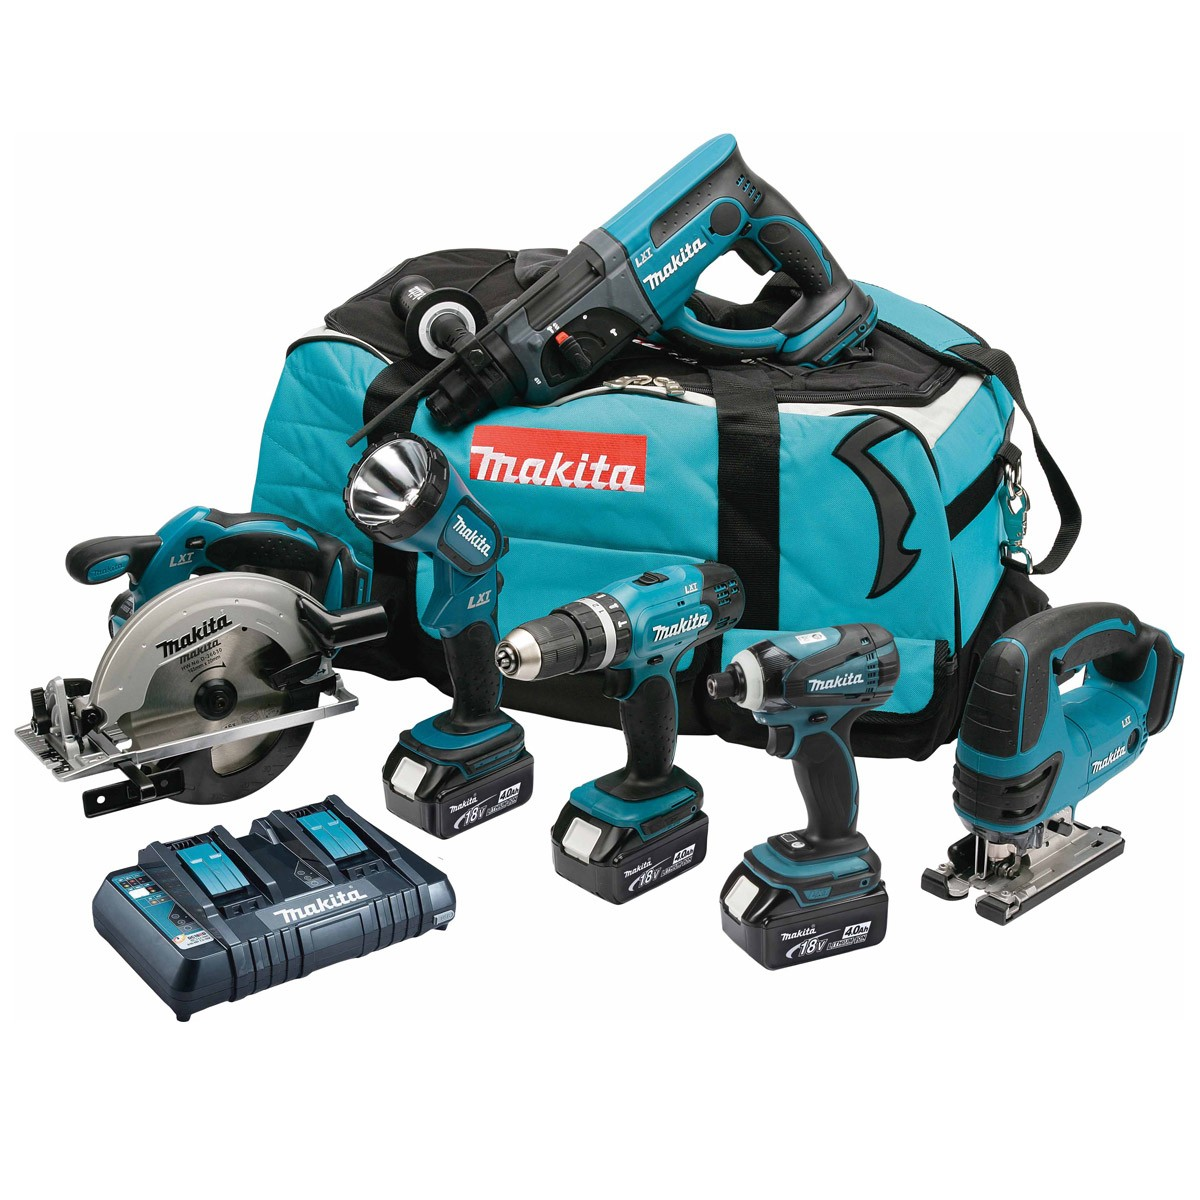 makita dlx6017pm 18v li ion 6 piece cordless kit 3x 4ah batts with twin charger powertool world. Black Bedroom Furniture Sets. Home Design Ideas